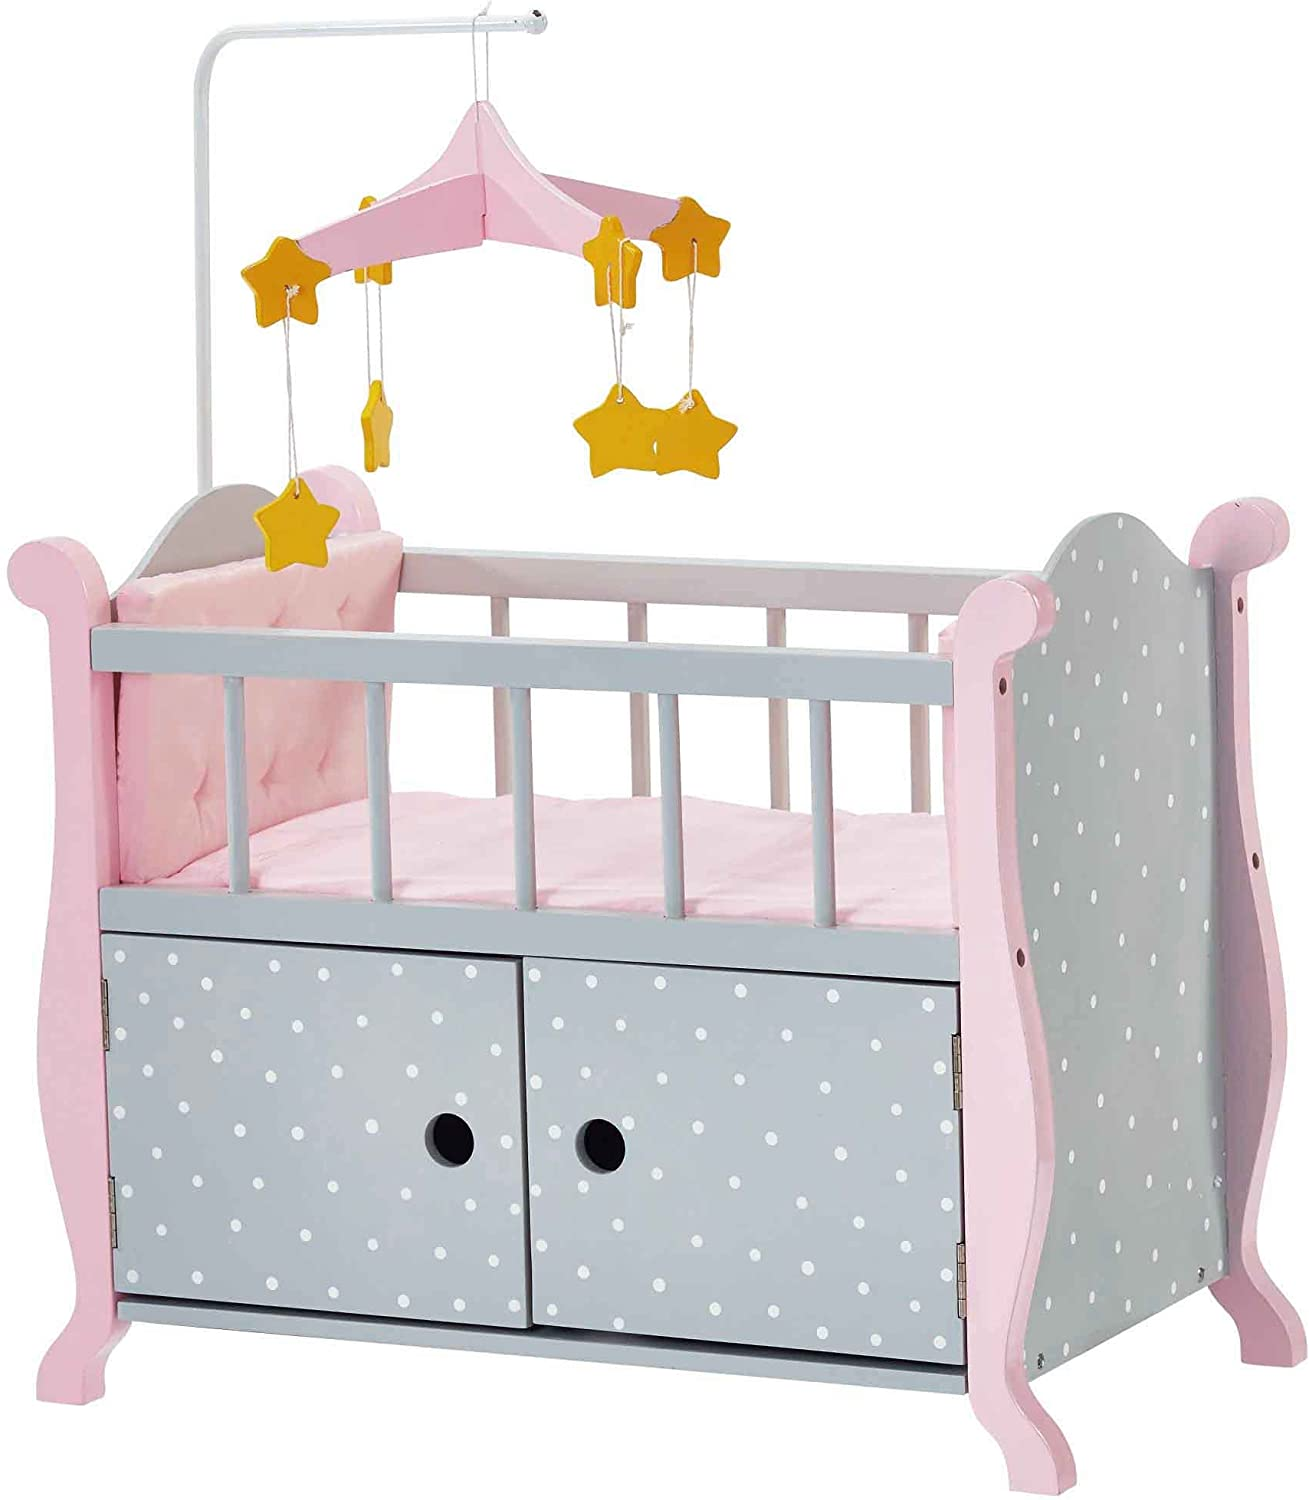 Olivia's Little World - Baby Doll Wooden Furniture with Beddings, Polka Dots Princess Nursery Crib Bed with Storage Cabinet Bedding, Gray Pink Polka Dots